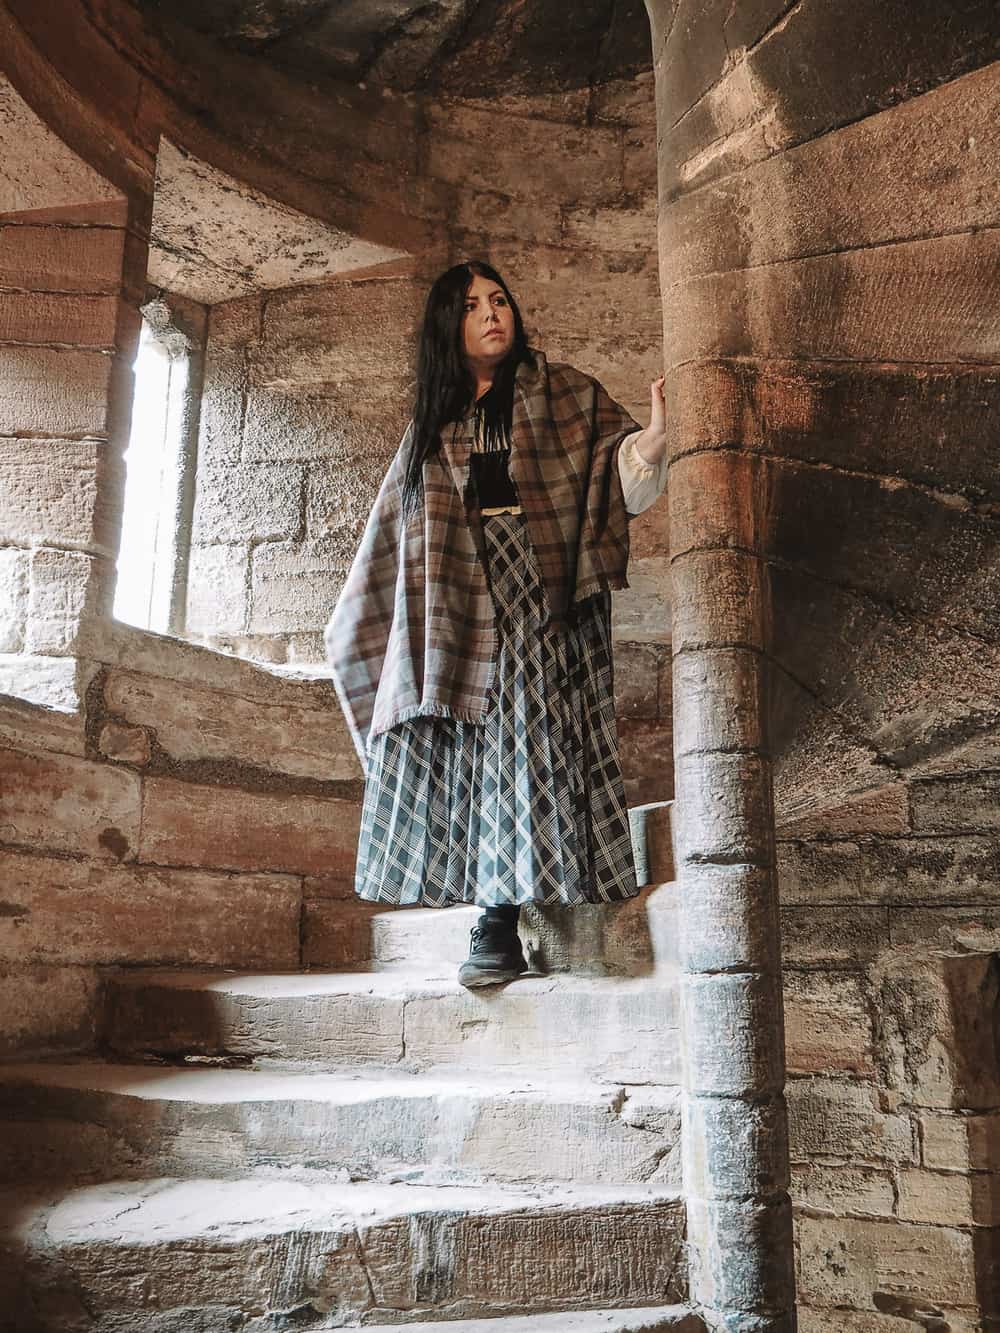 Linlithgow Palace Outlander Wentworth Prison Staircase